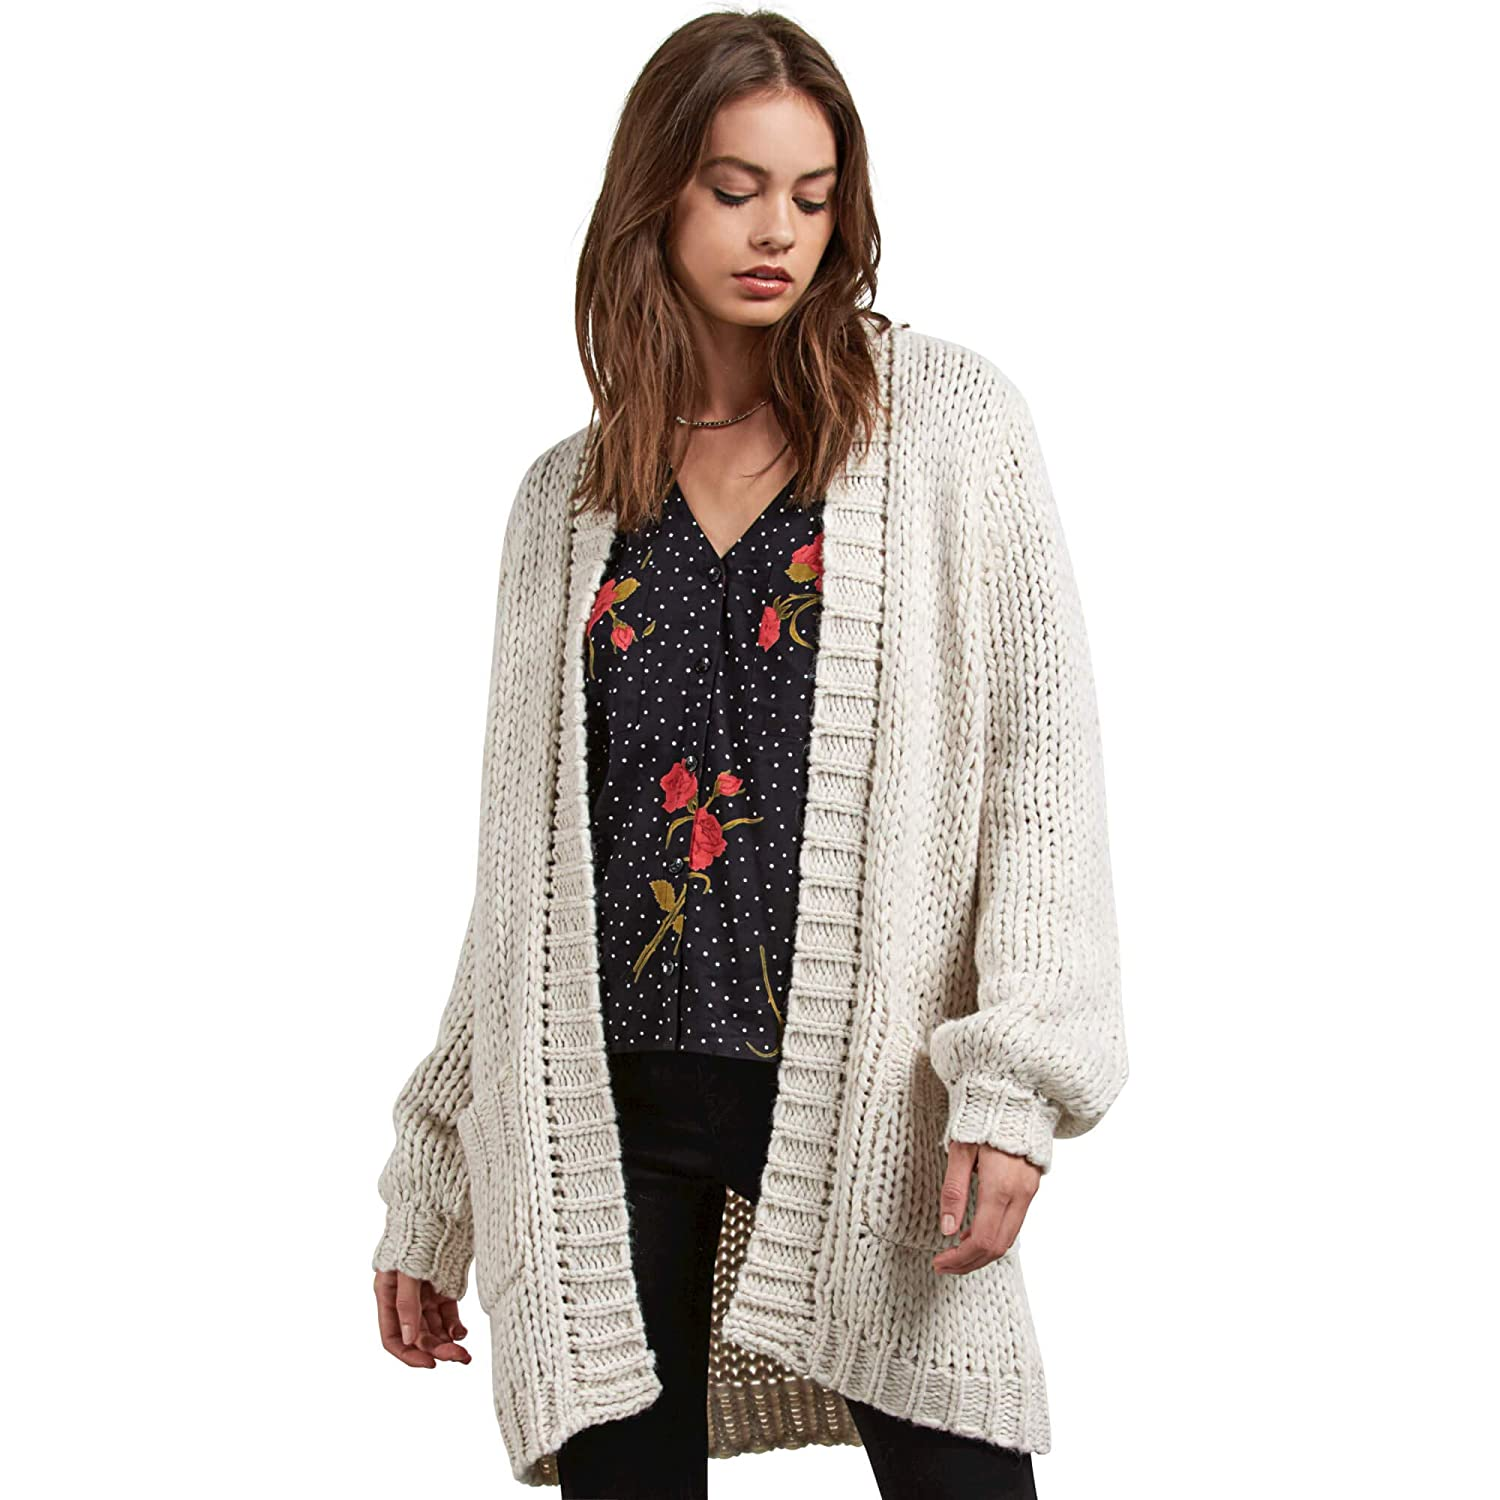 Volcom Women's Knitstix Oversized Chunky Cardigan Sweater B0731808